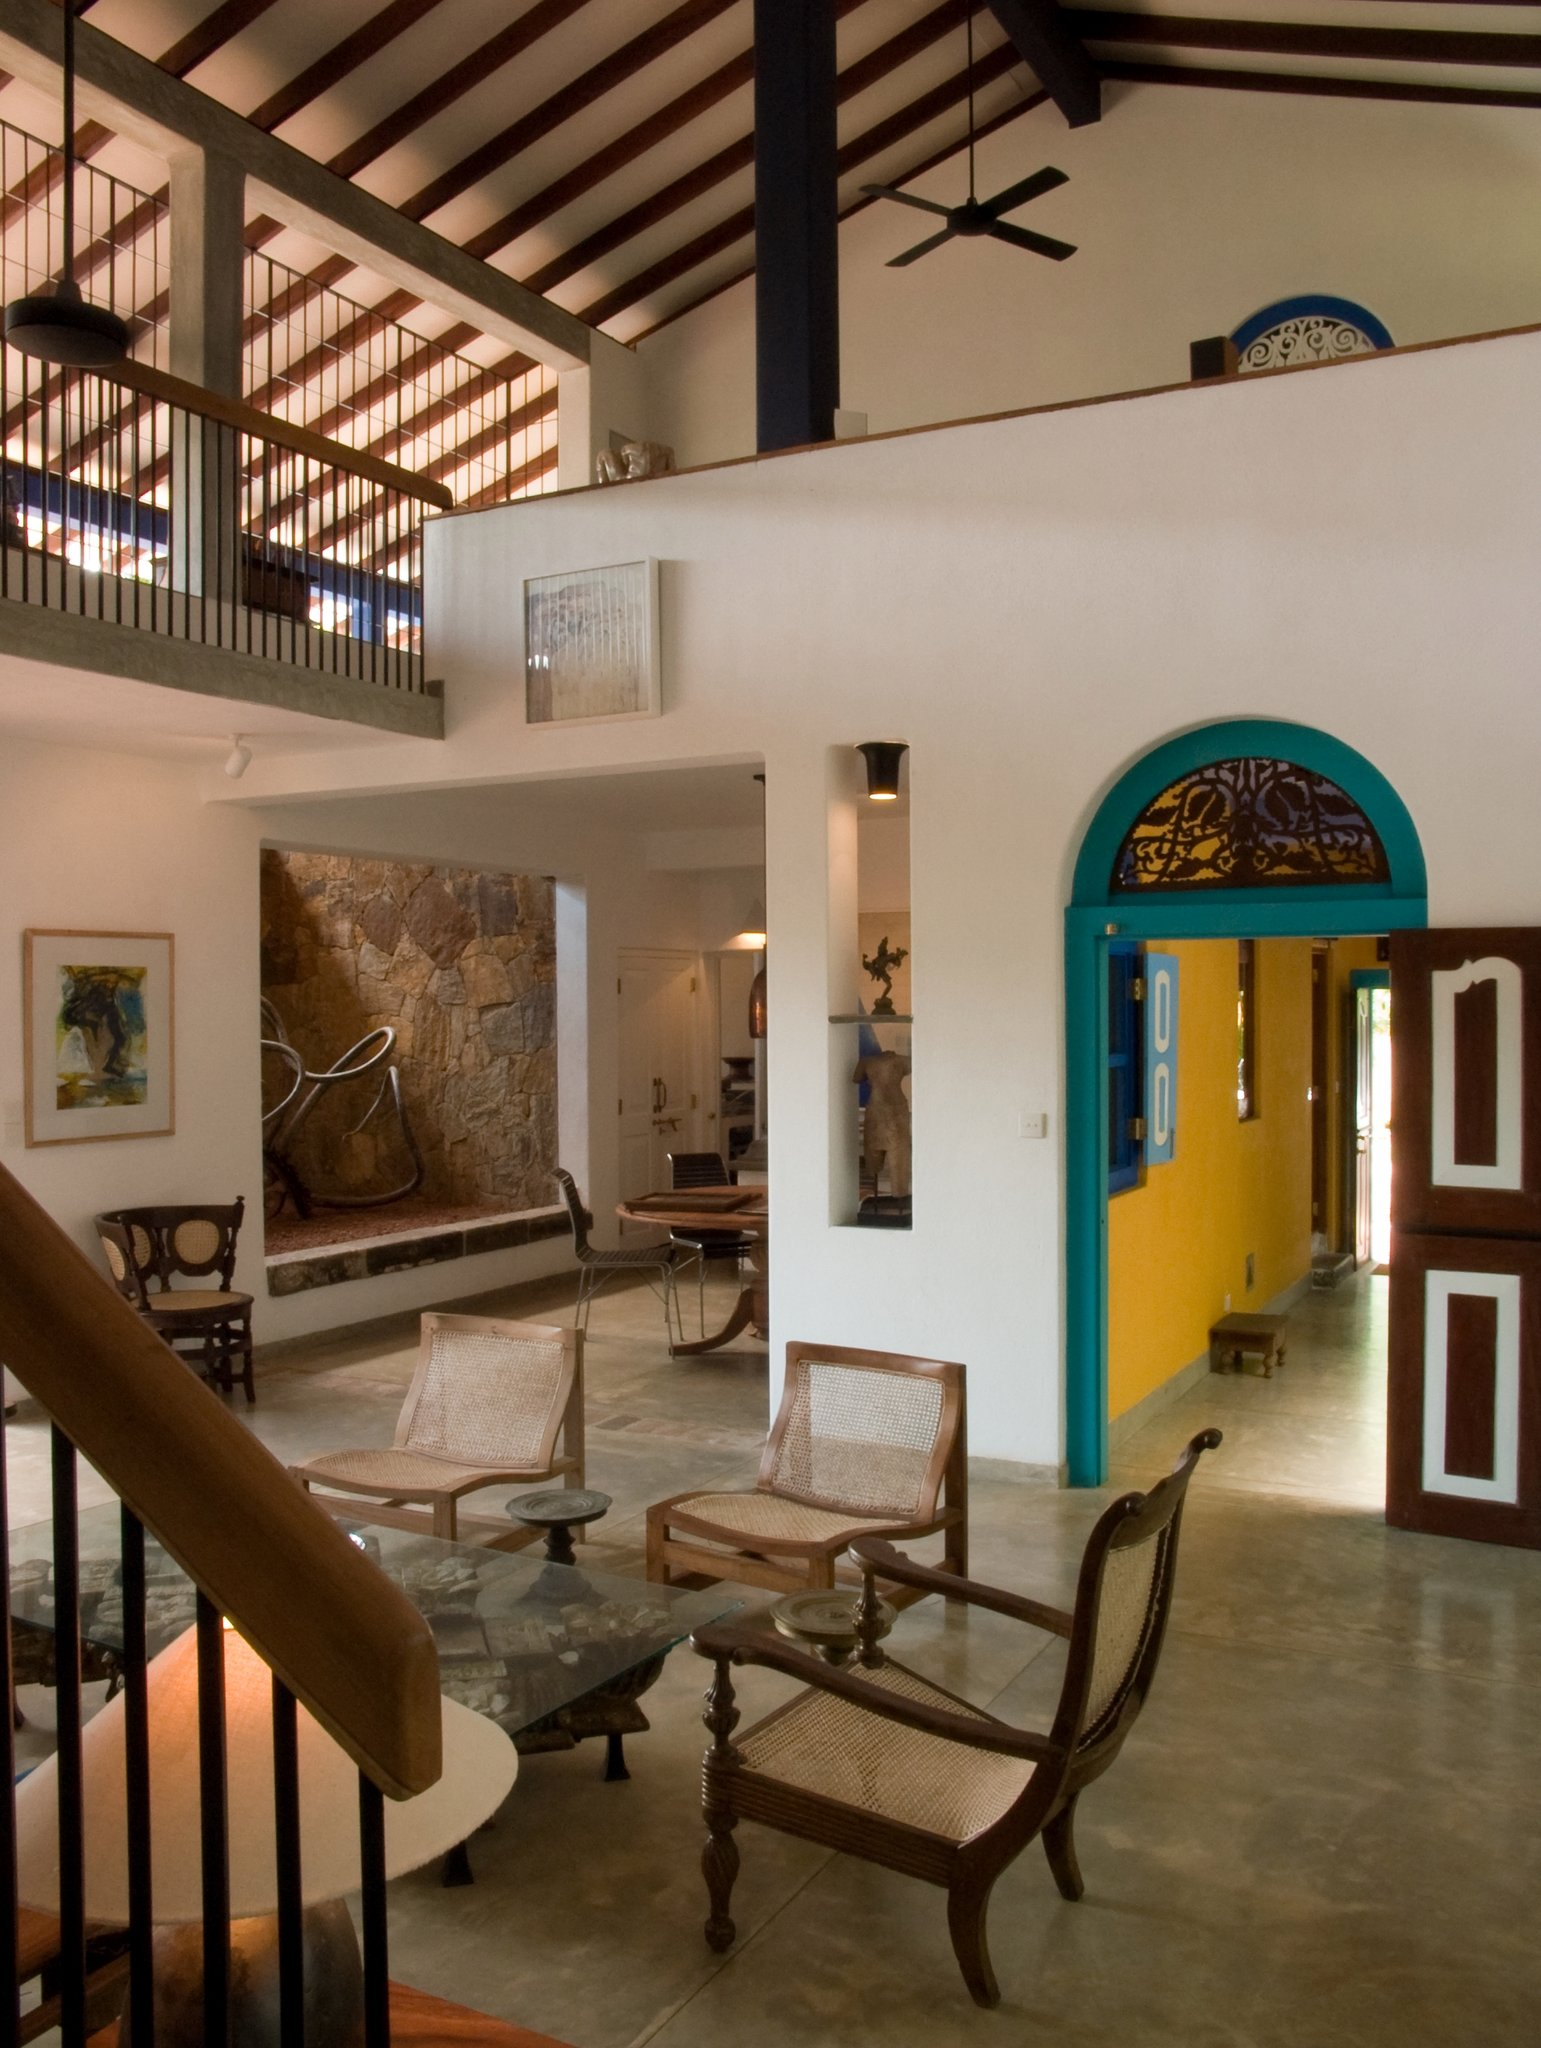 Home Design In Sri Lanka In Sri Lanka Putting The Focus On Tropical Modernism The New